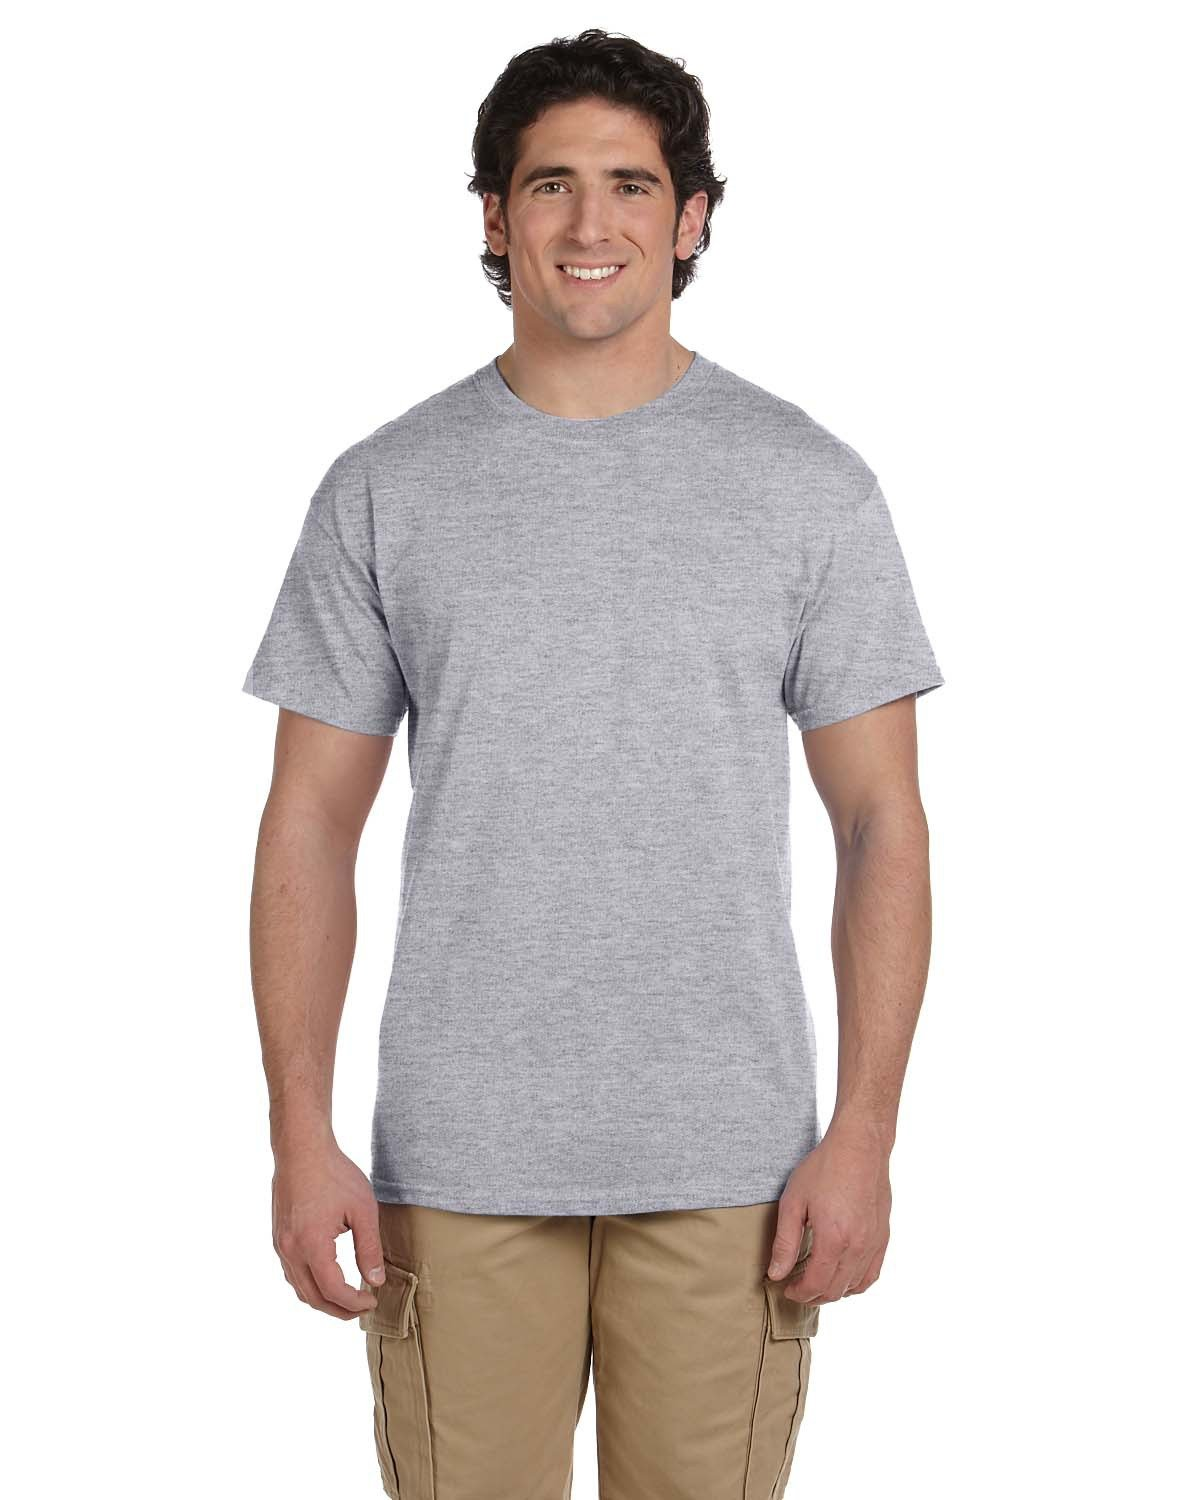 Fruit of the Loom Adult HD Cotton™ T-Shirt ATHLETIC HEATHER